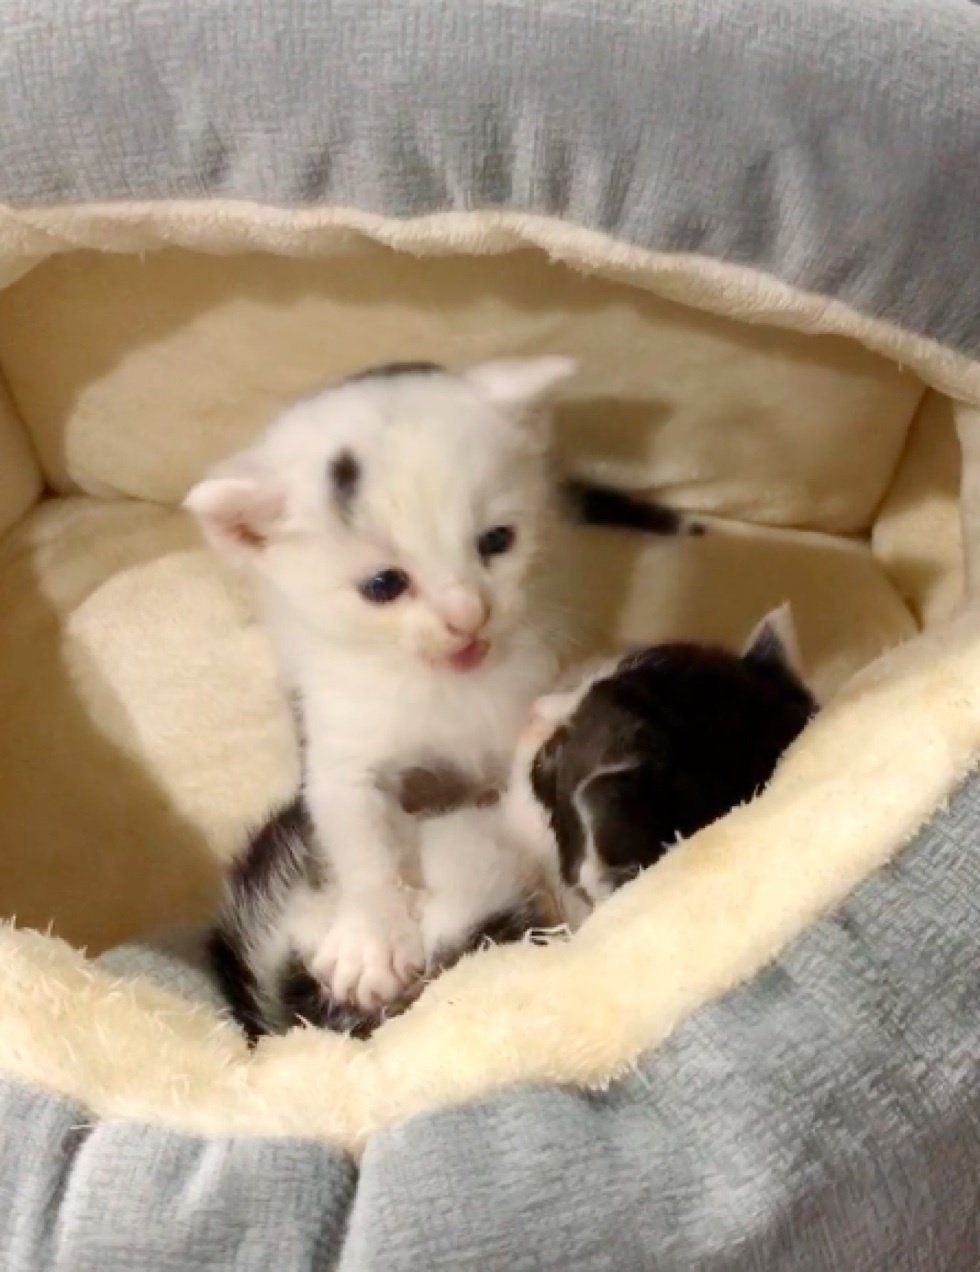 Kittens Found Crying On Loading Dock Get Much Needed Help And Comfort Love Meow Kittens Cat Mom Cute Animals